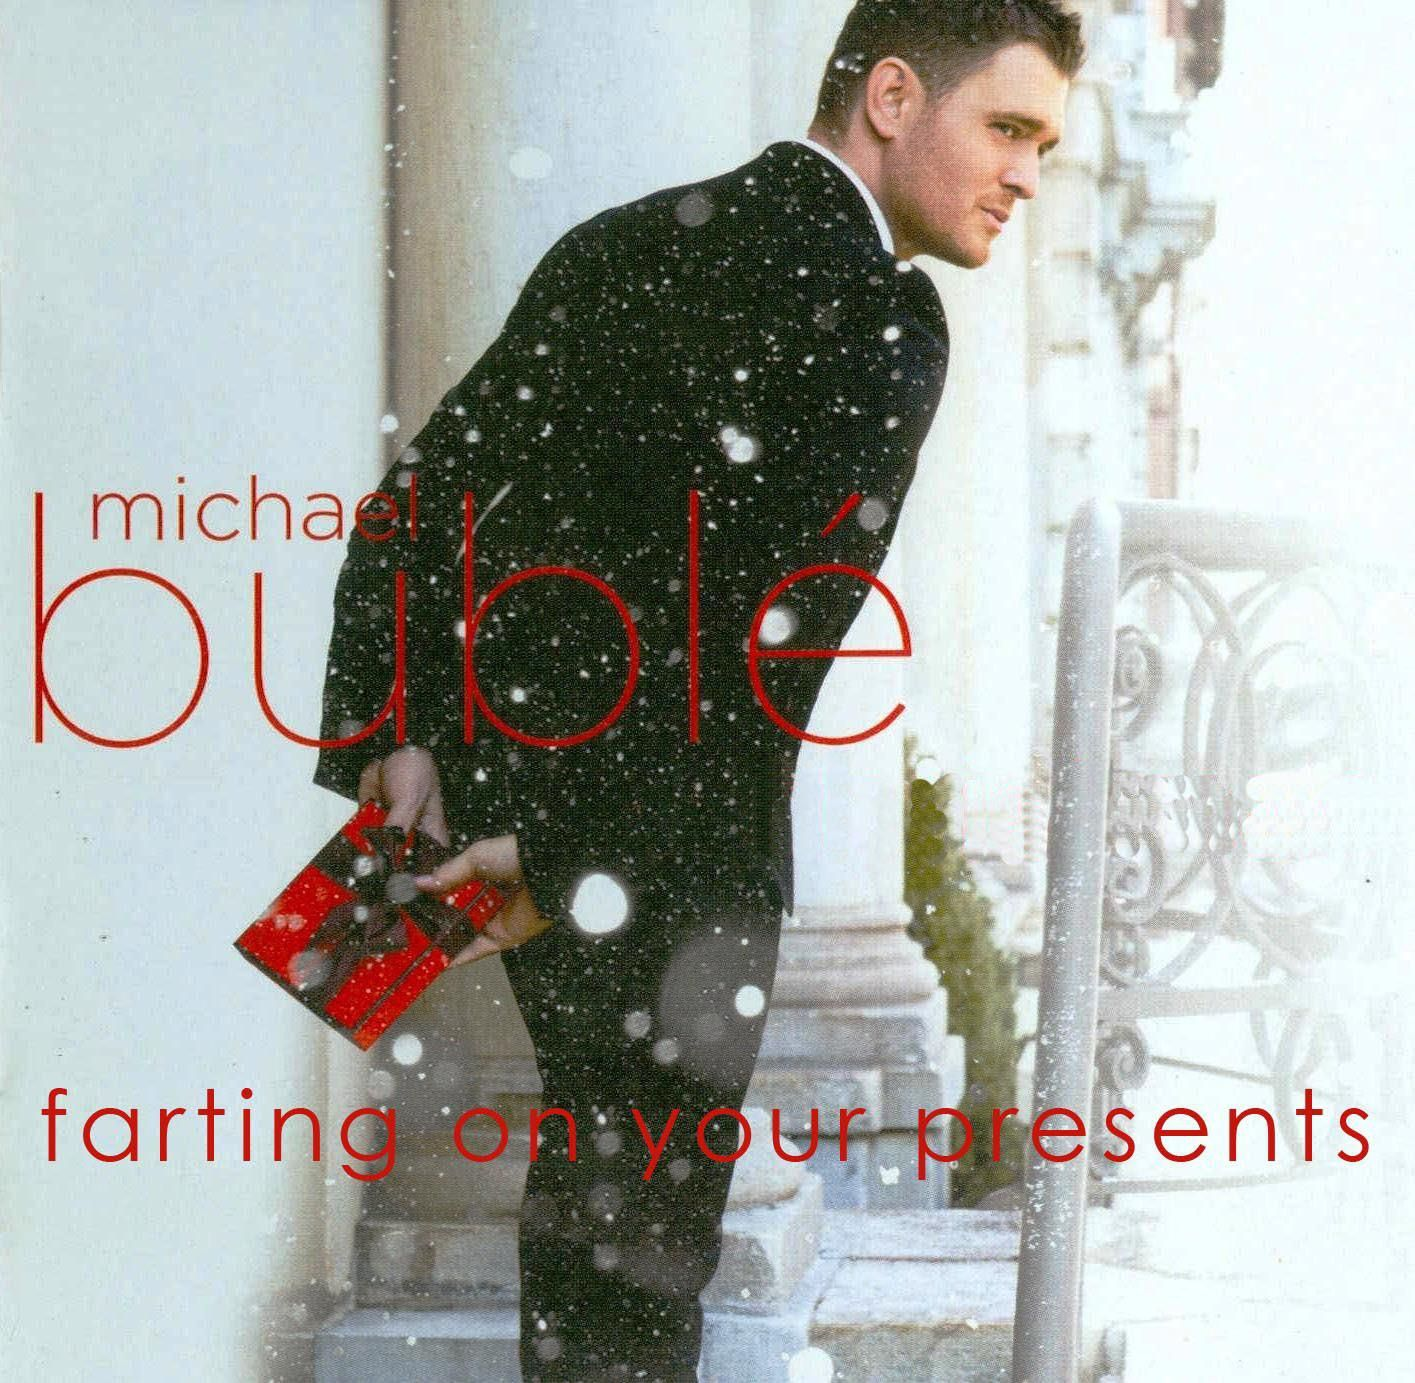 It's almost that time of year for my favorite album